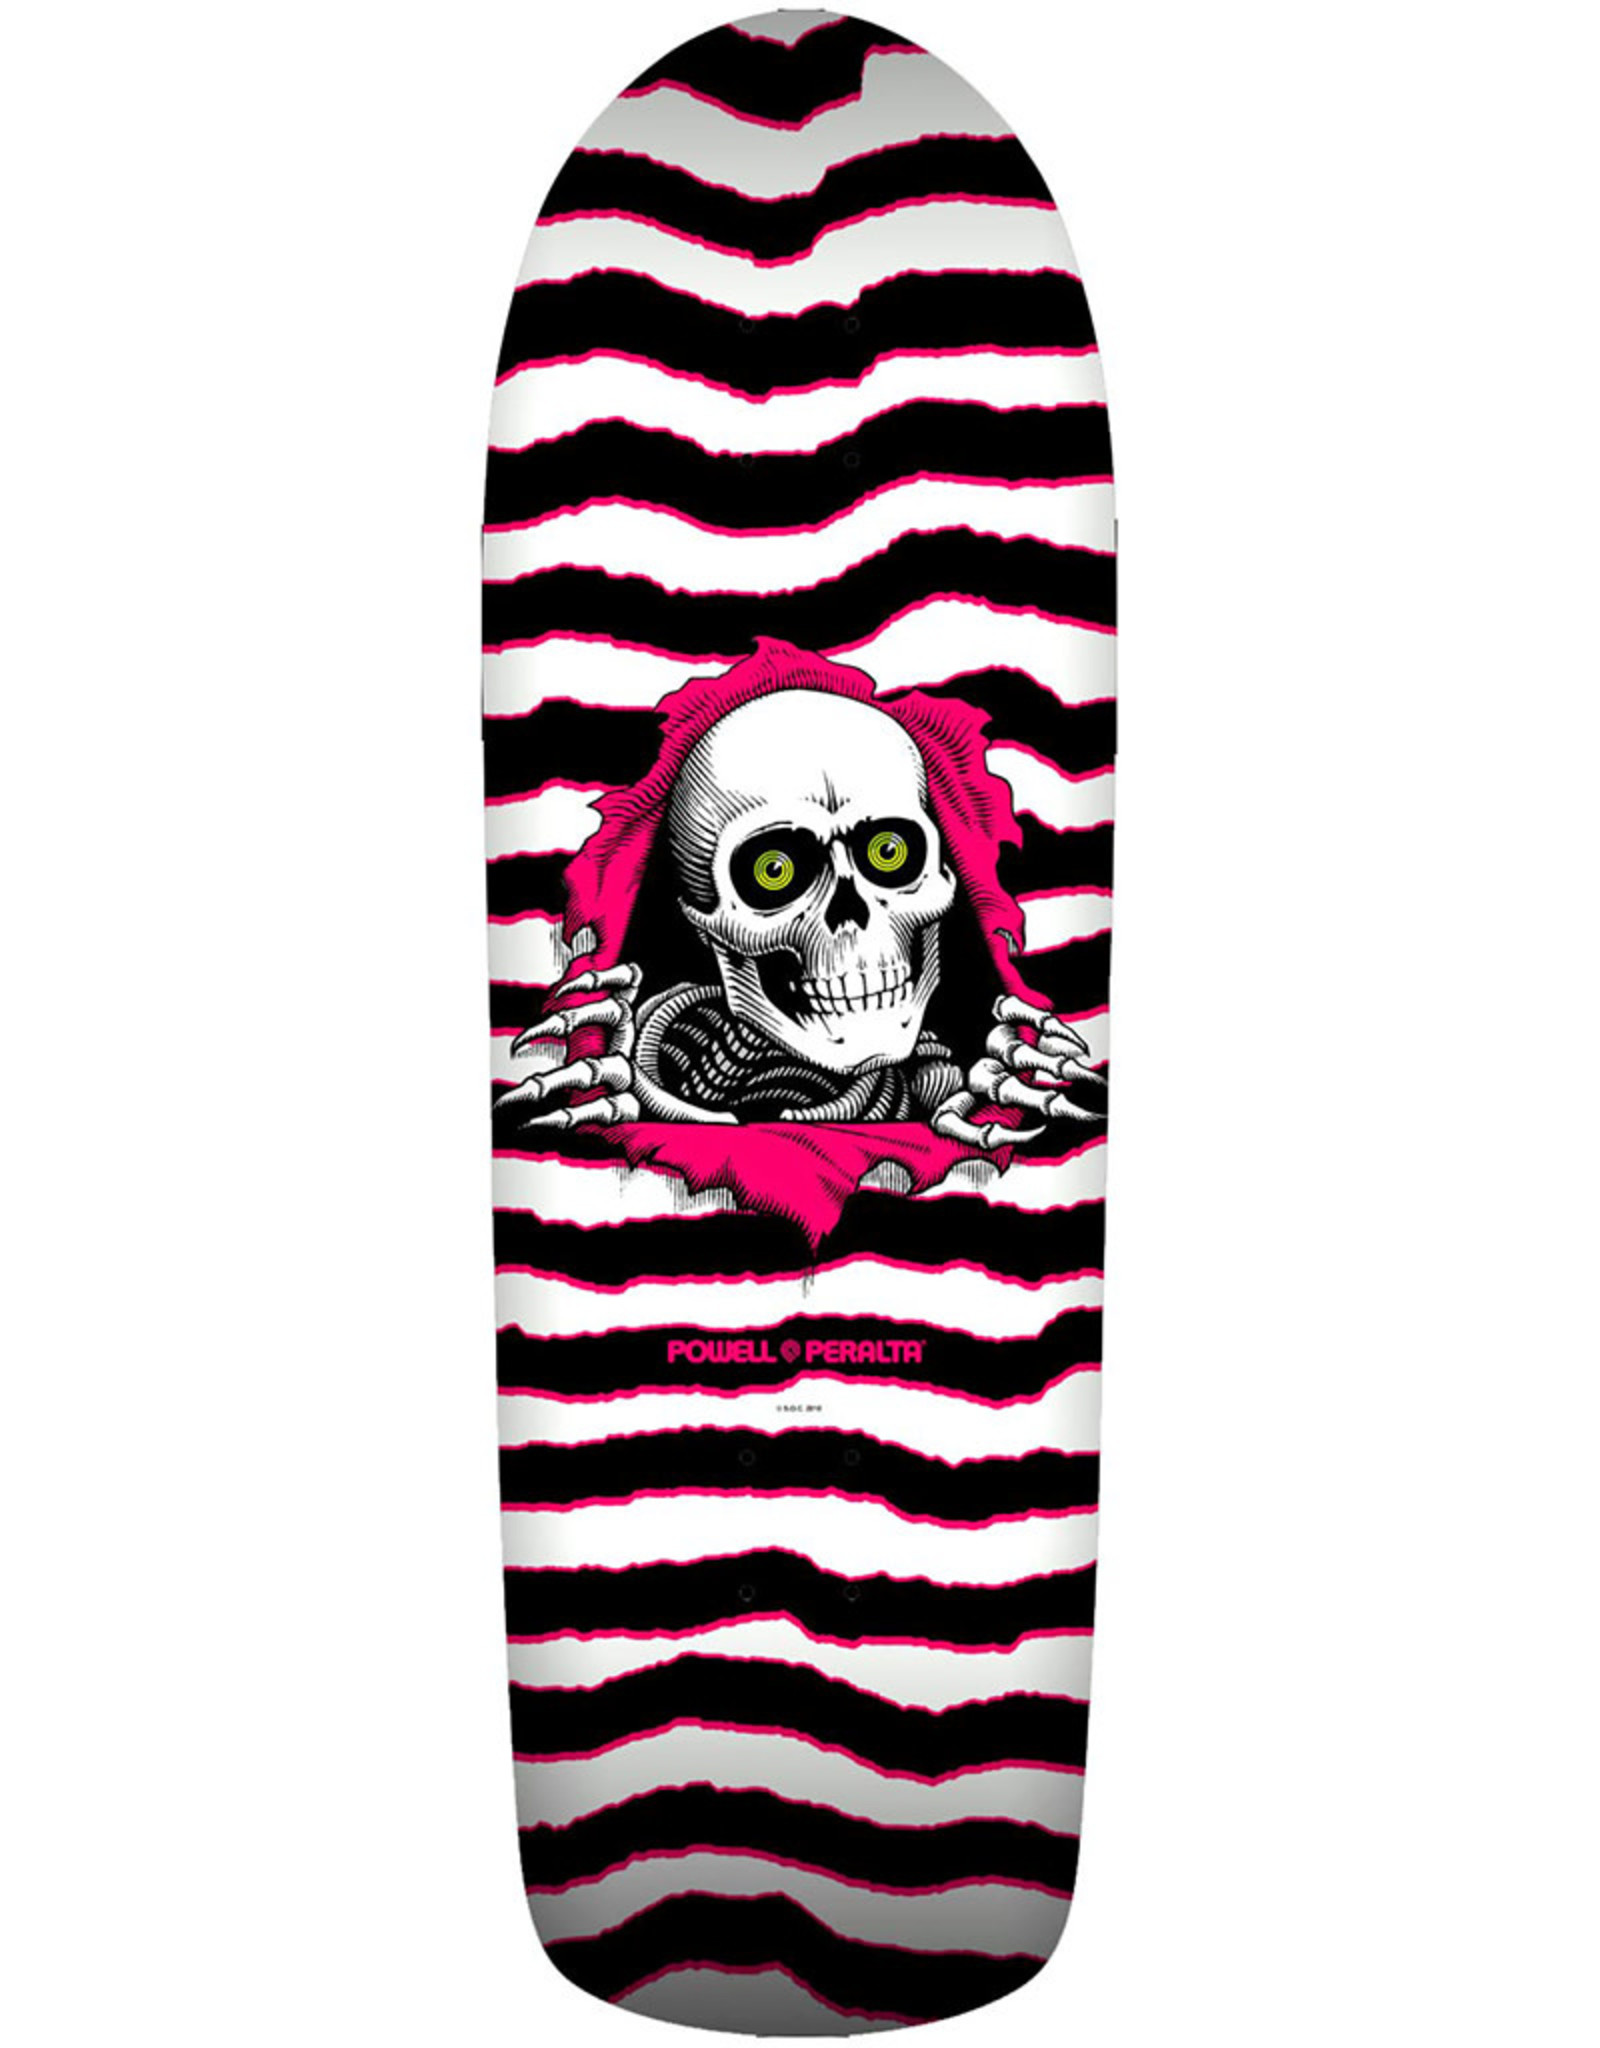 Powell Peralta Powell Peralta Deck Old School Ripper White/Pink (10.0)